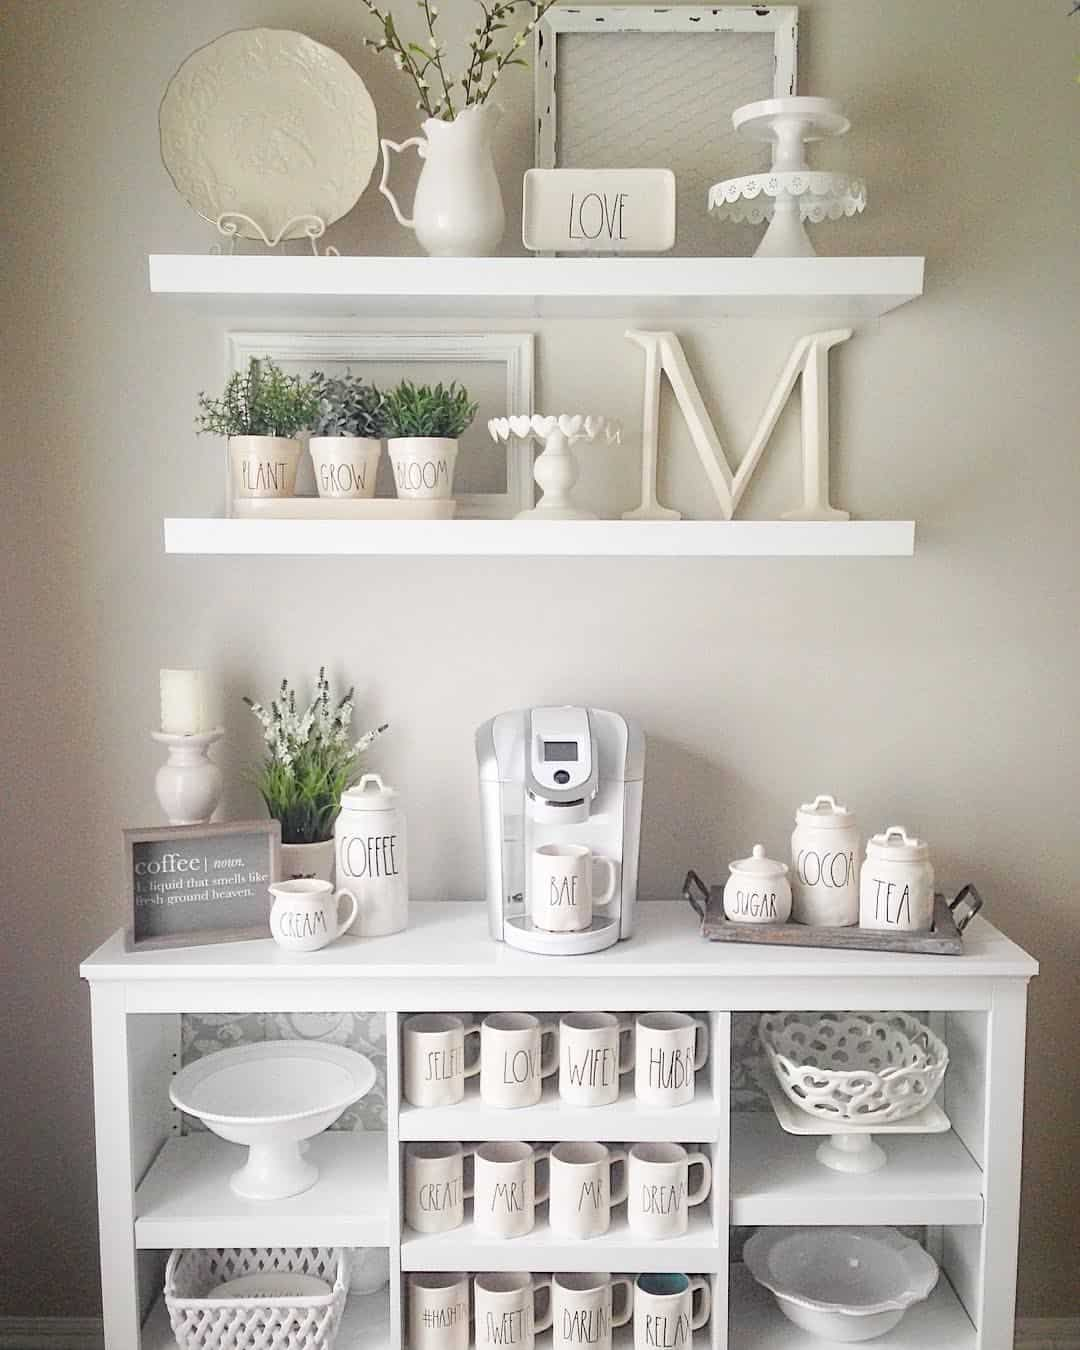 When you DIY your coffee mug rack you have the ability to create the perfect space for you.